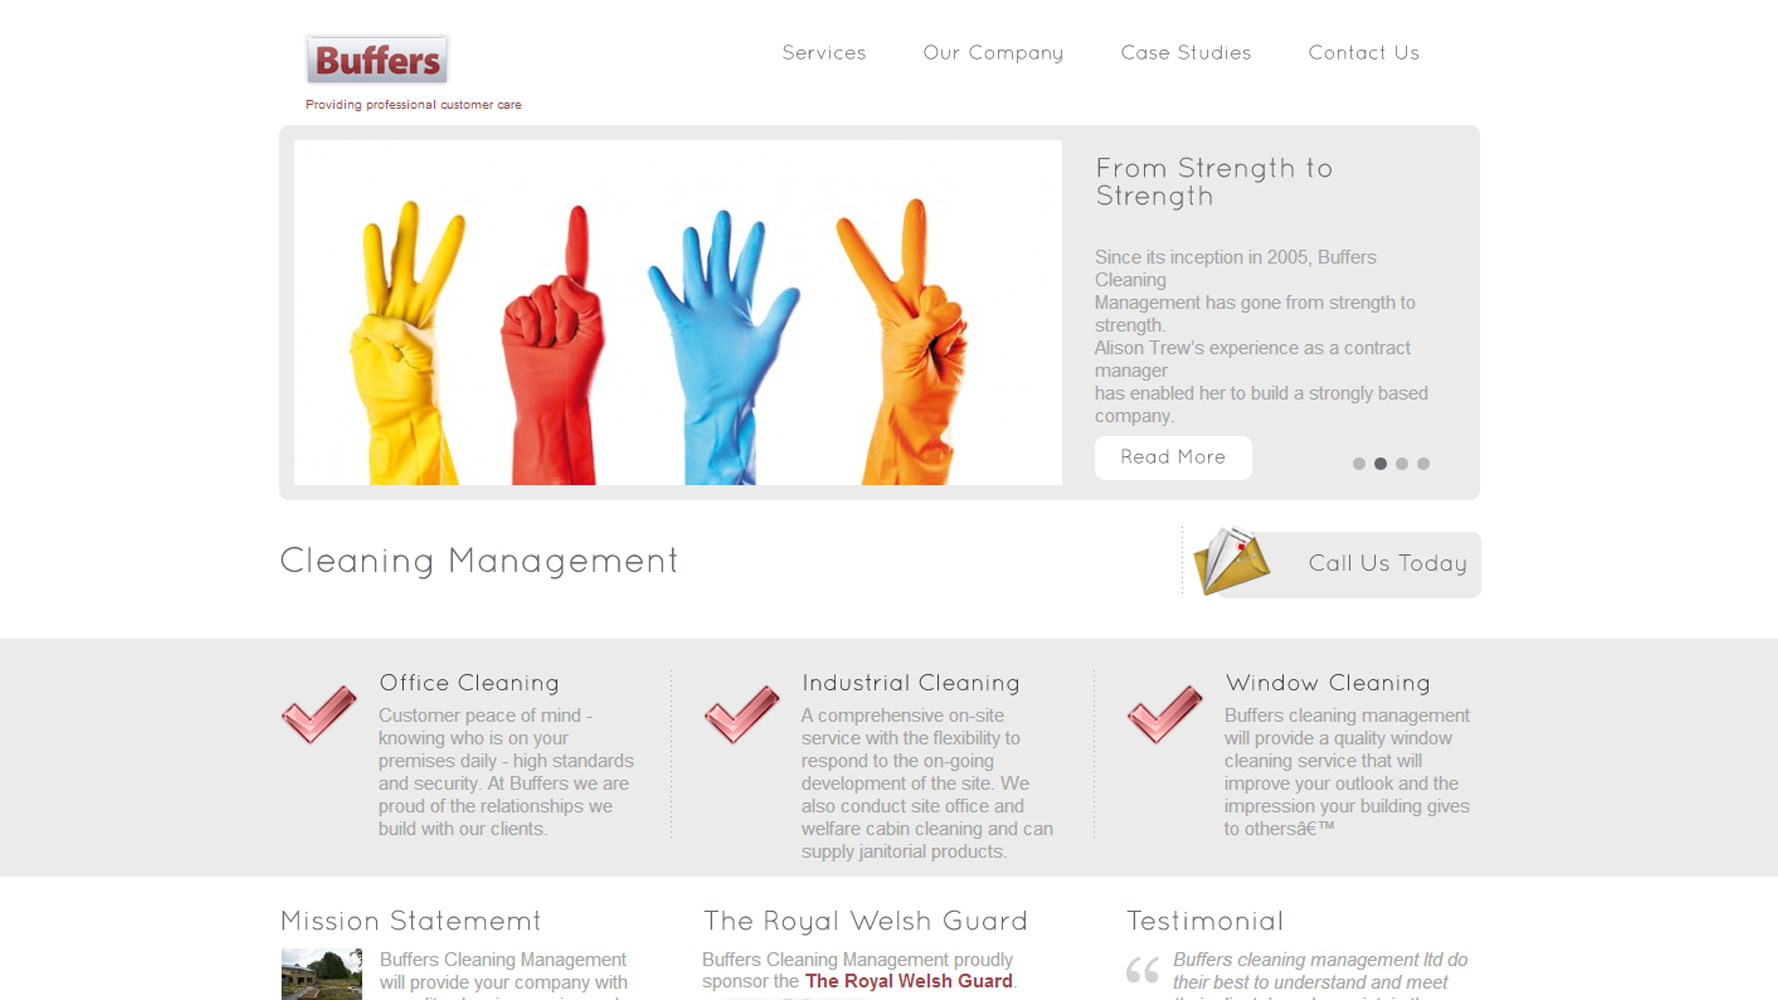 Buffers Cleaning Management web design by Web Adept